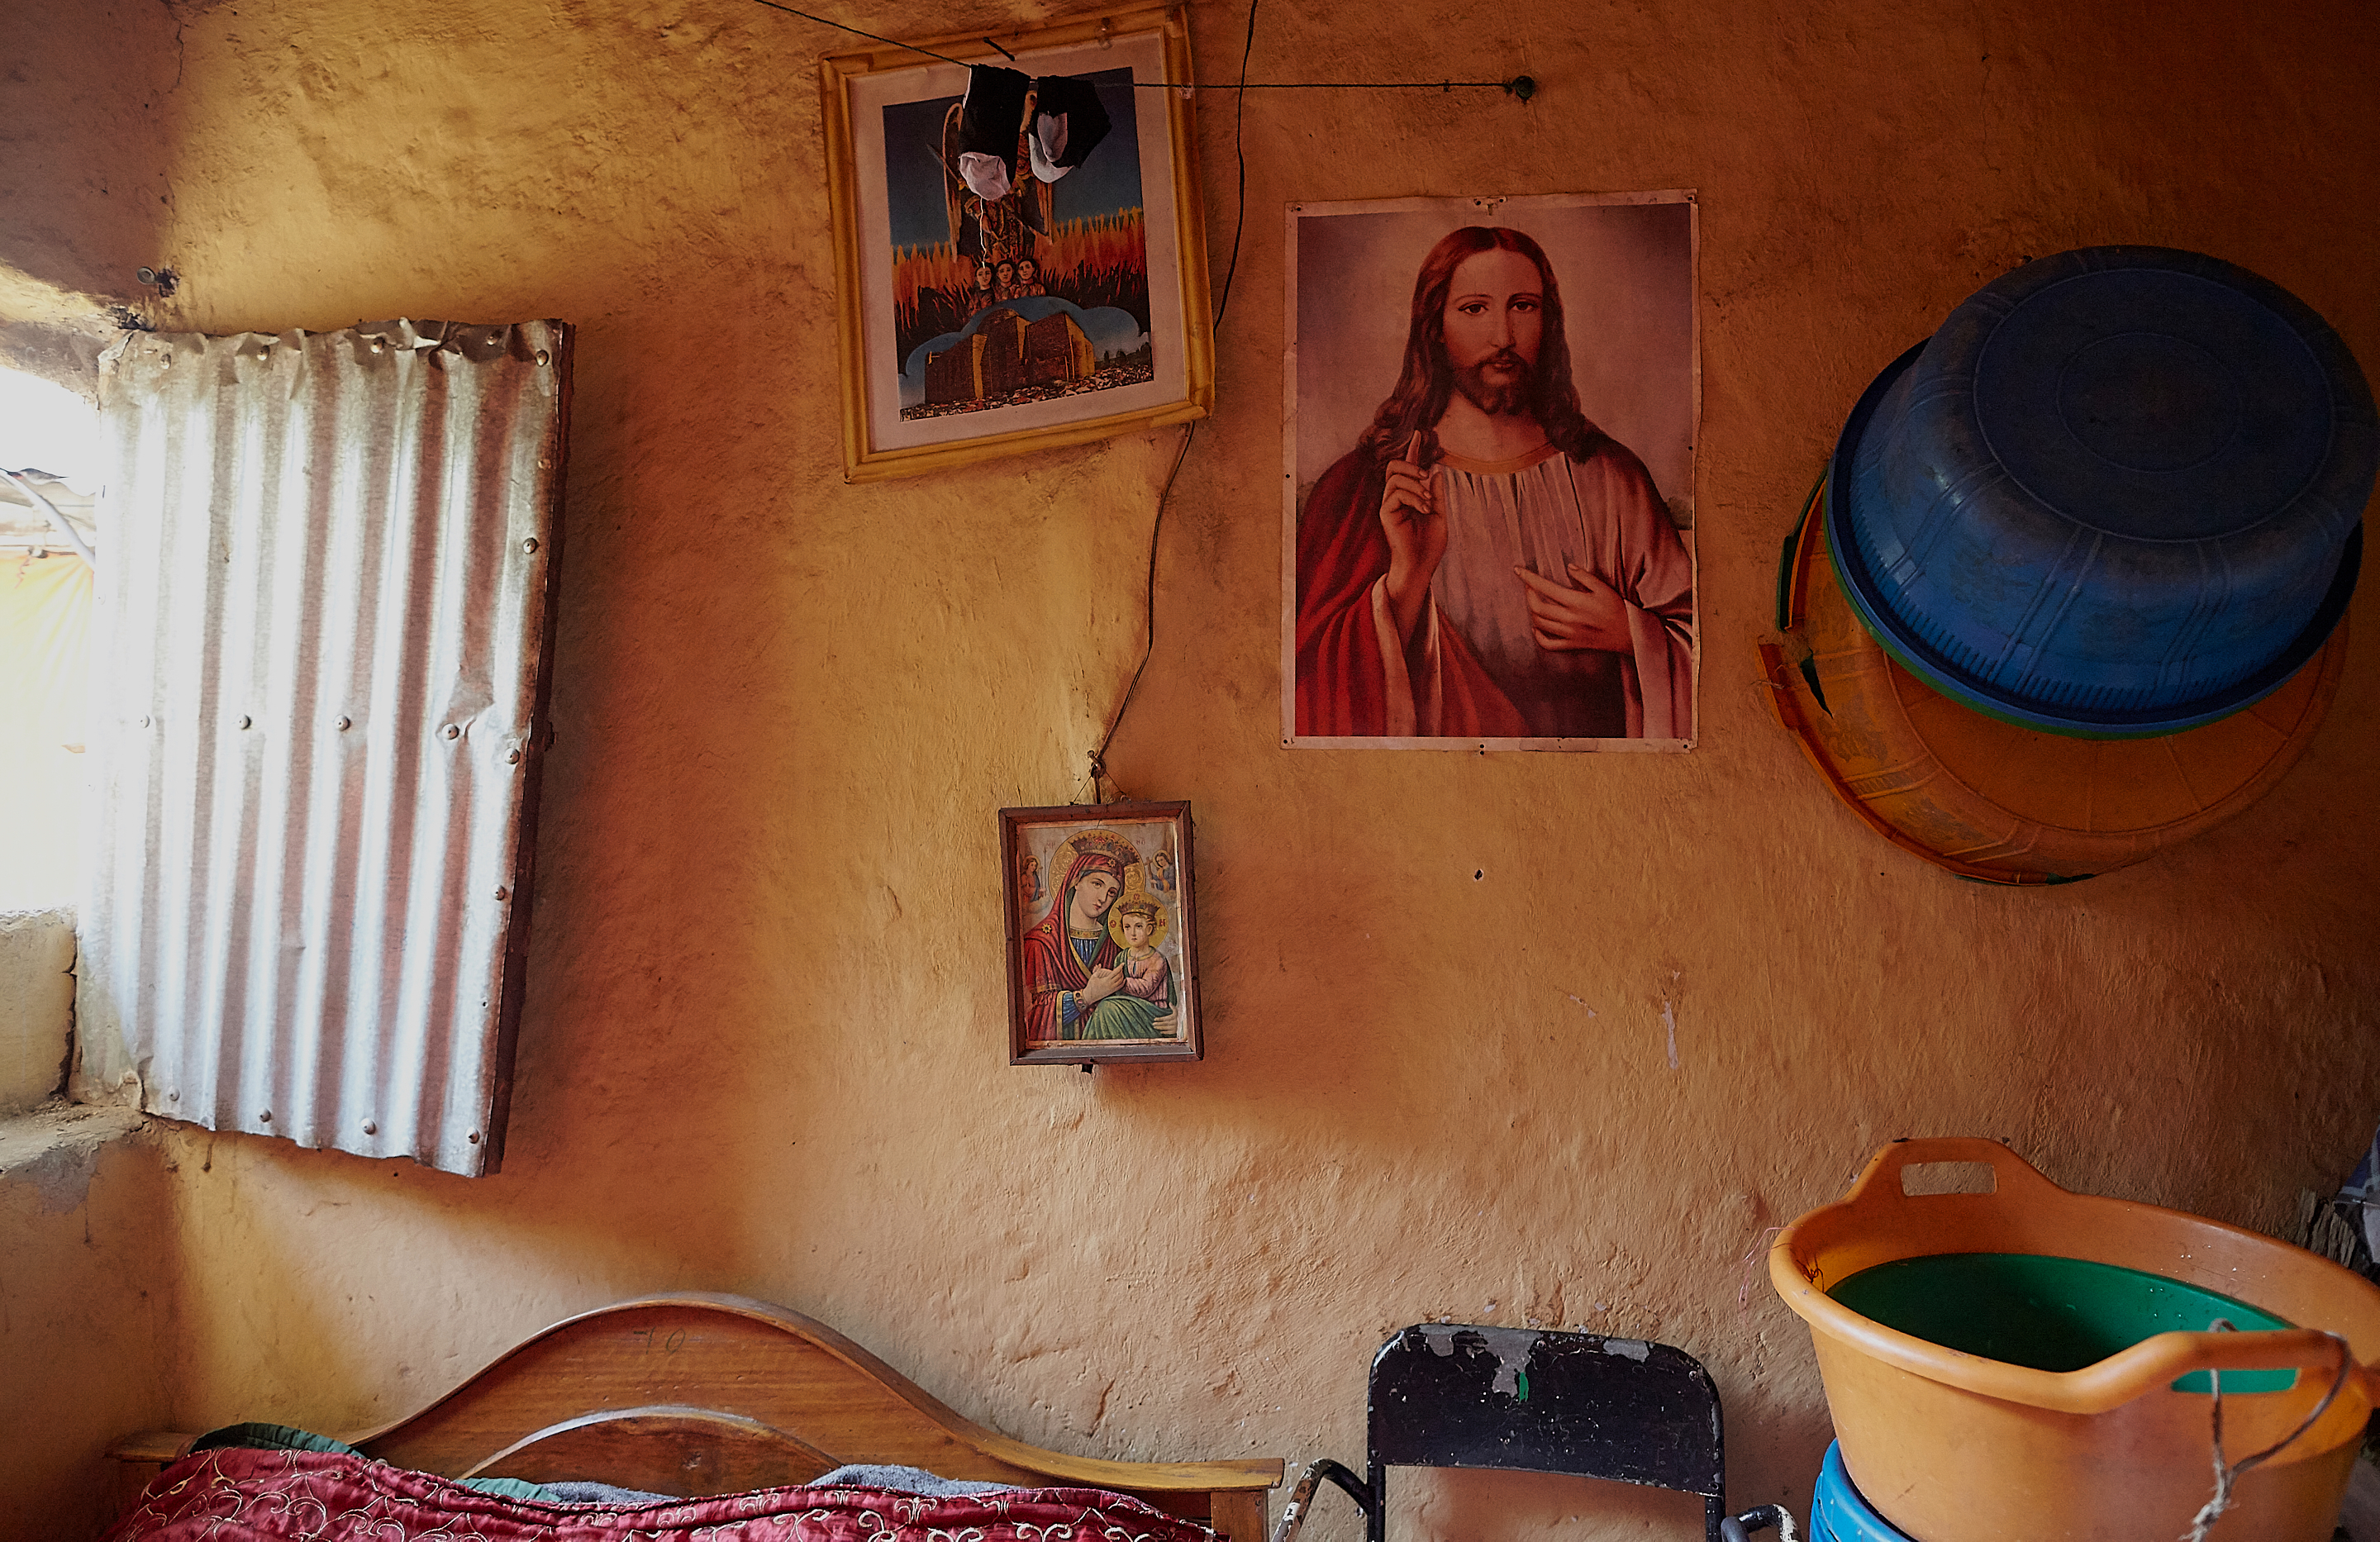 Who Lives Here, Ethiopia documentary photography.